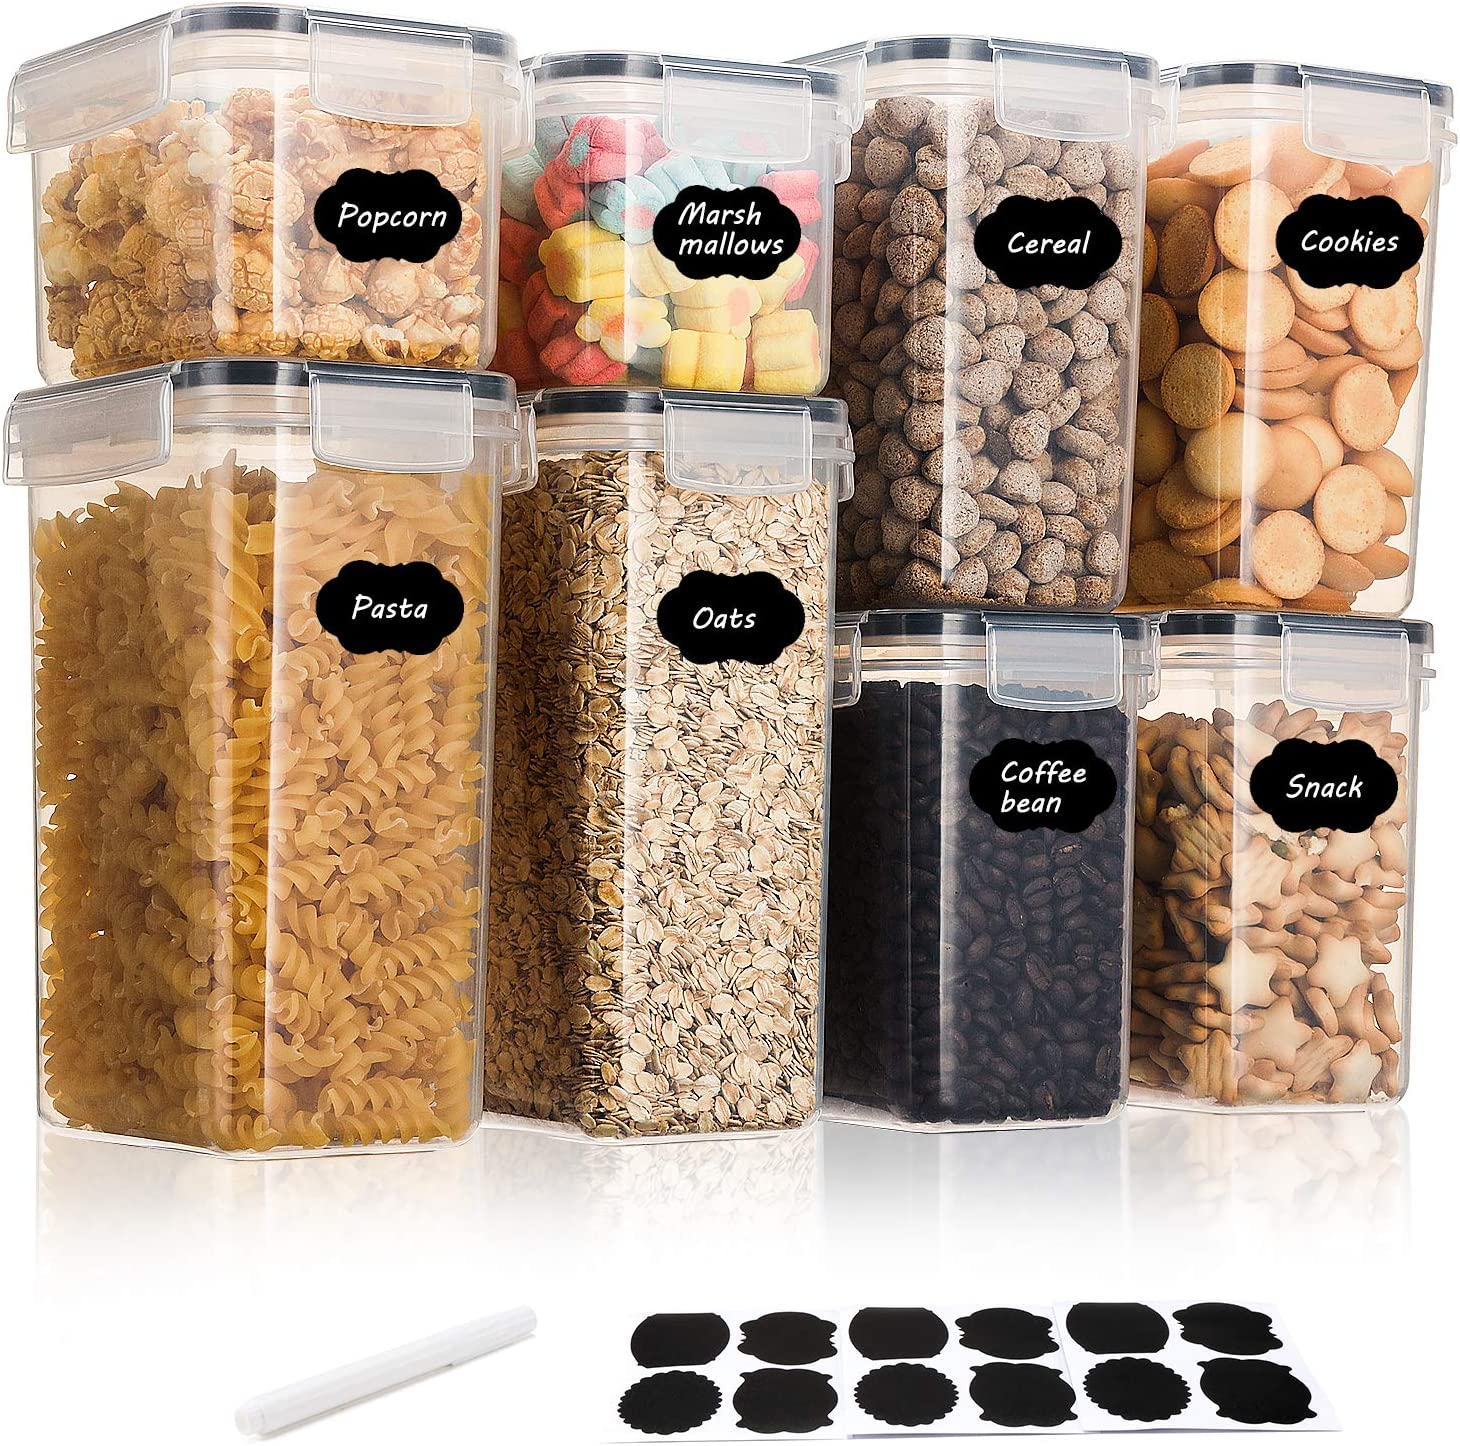 Aitsite Airtight Food Storage Containers 8 Pieces Plastic BPA Free Kitchen Pantry Storage Containers for Sugar, Flour and Baking Supplies - Dishwasher Safe